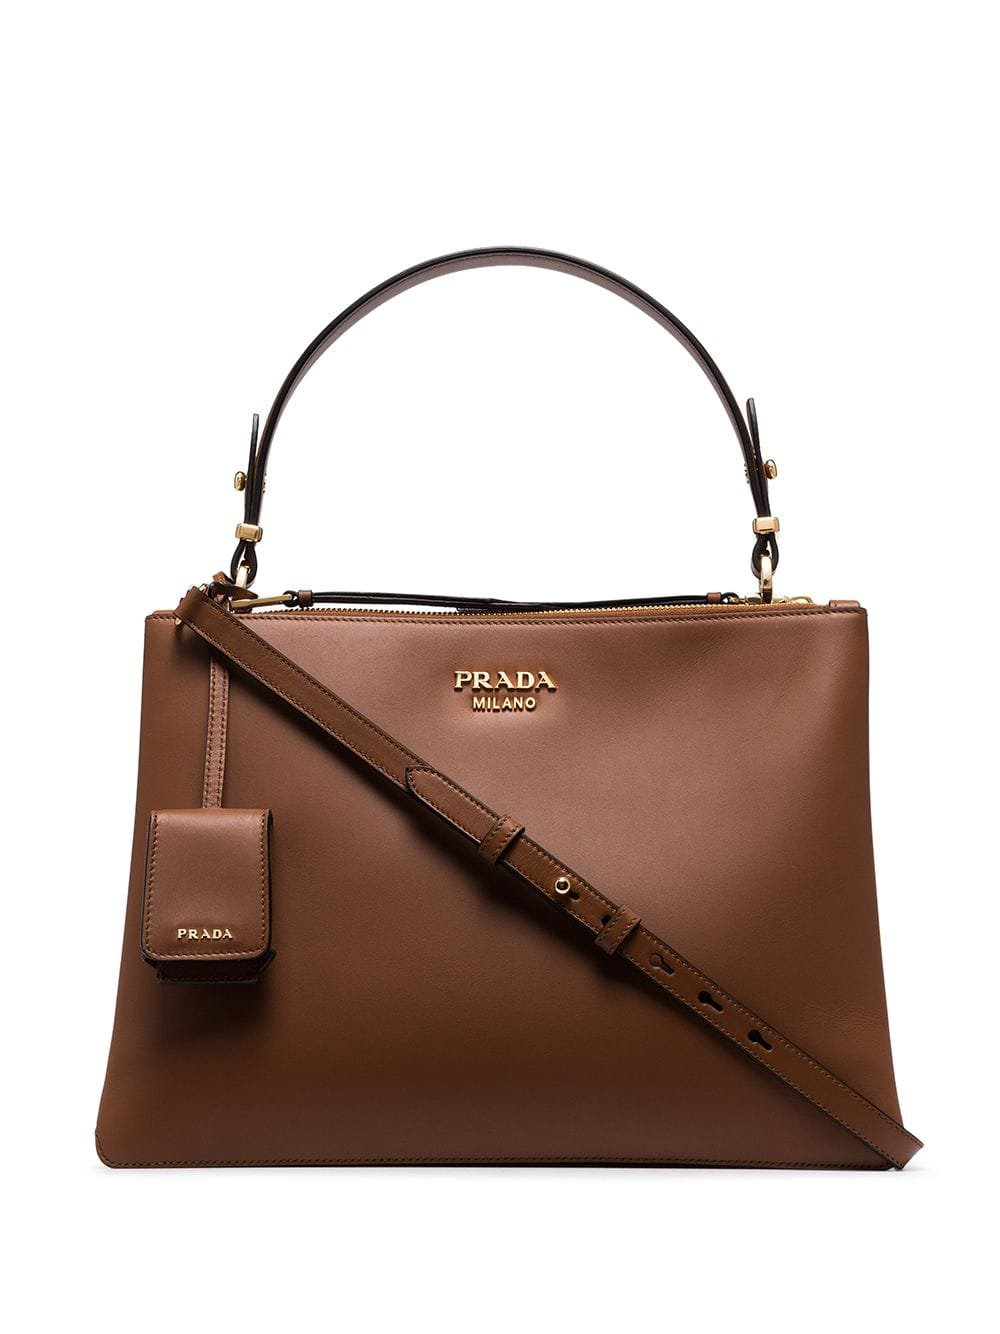 Prada Double-Zip Tote Bag | Farfetch.com